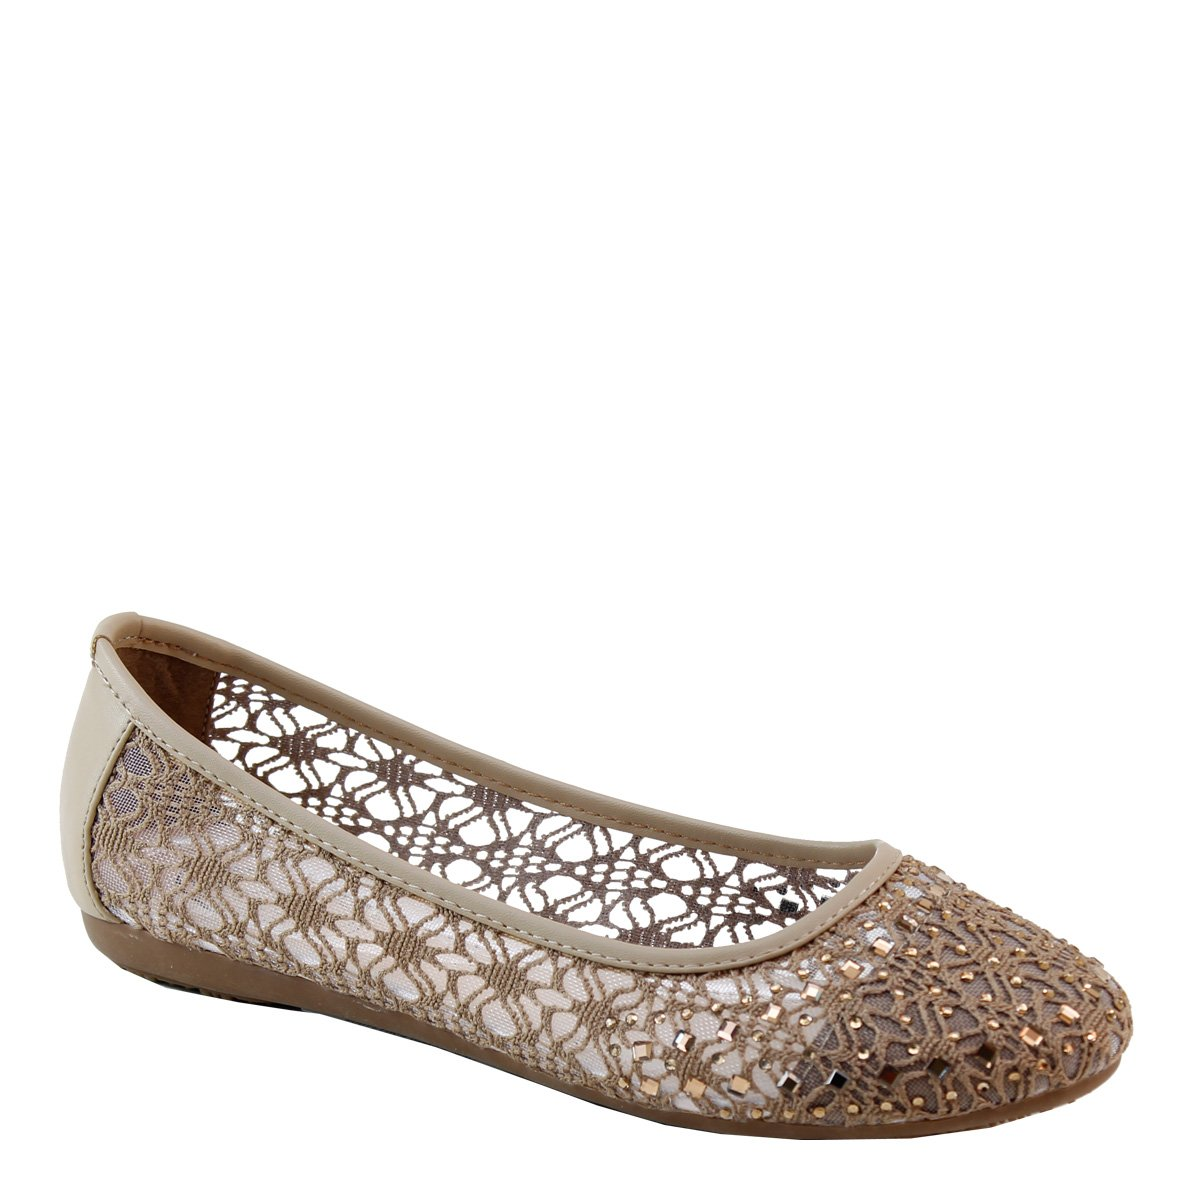 Brieten Womens Floral Emboid Studded Flat Shoes